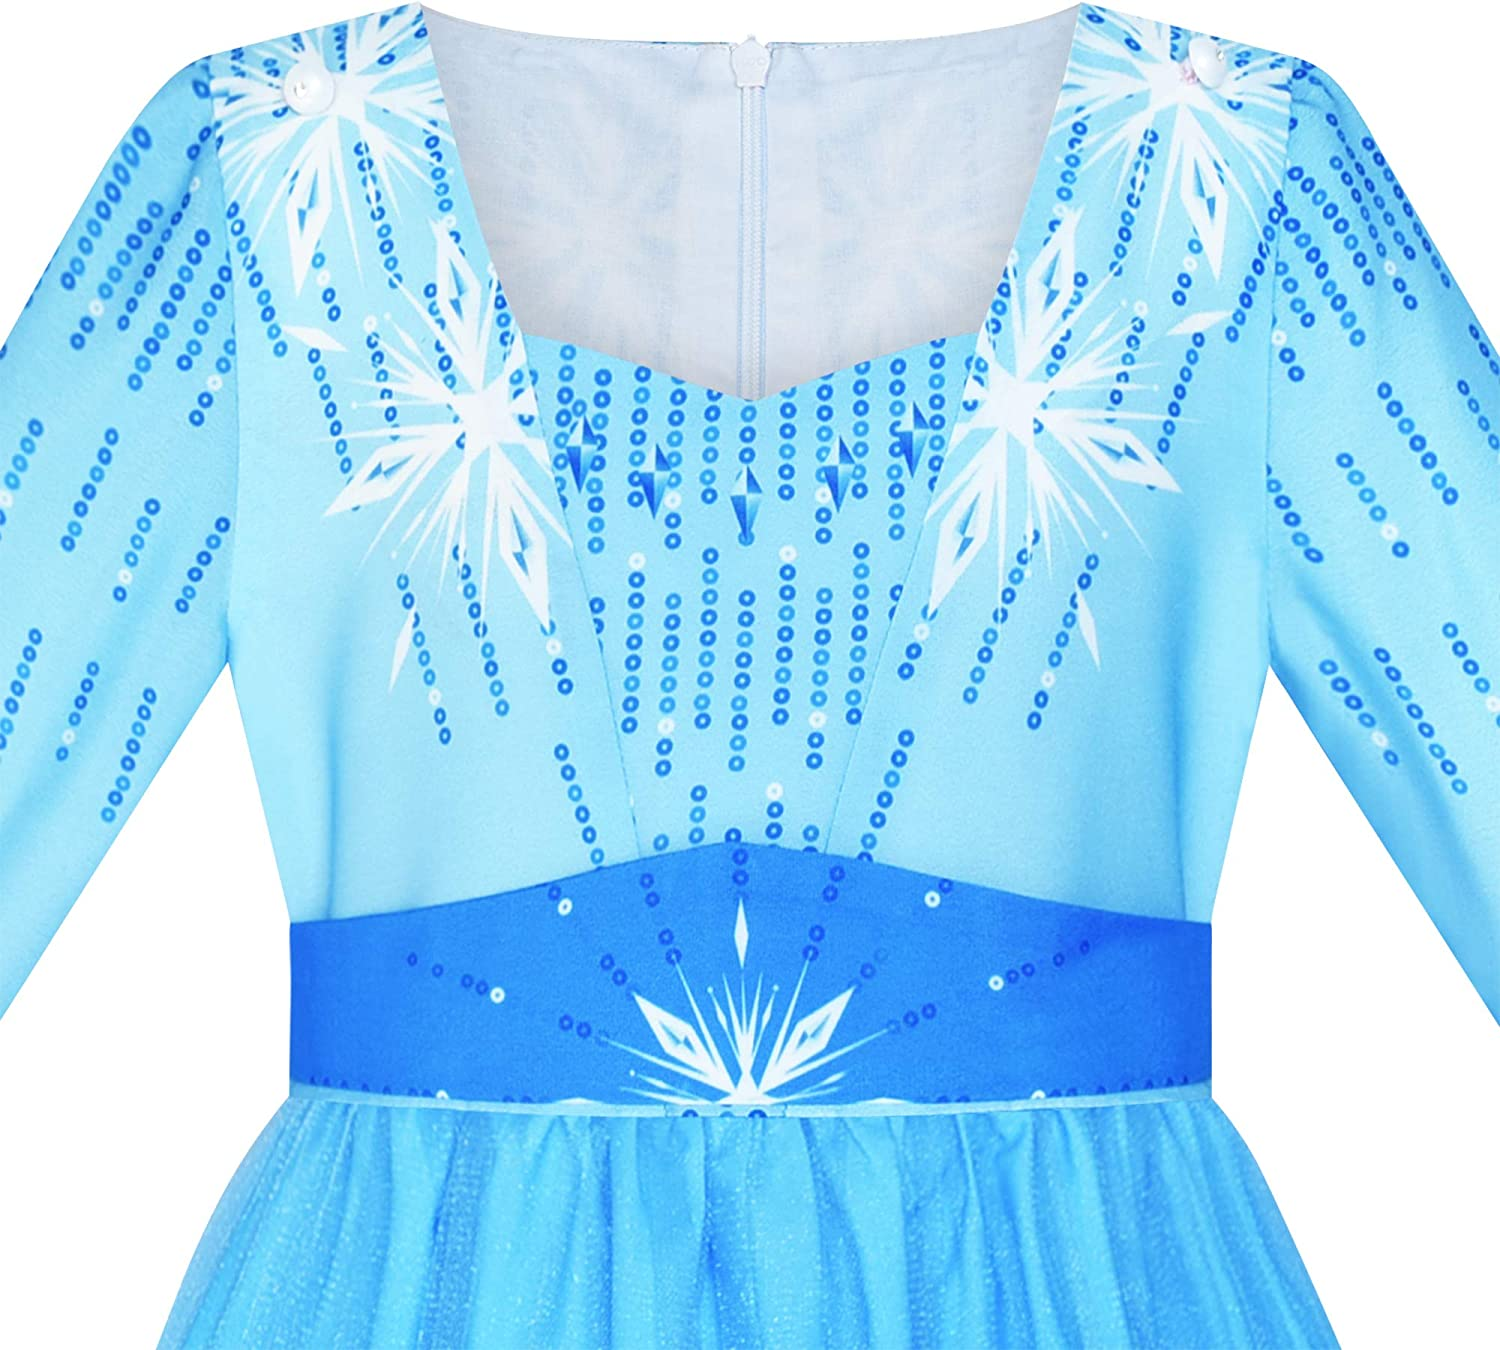 Girls Dress Snow Queen Ice Princess Birthday Party Size 7